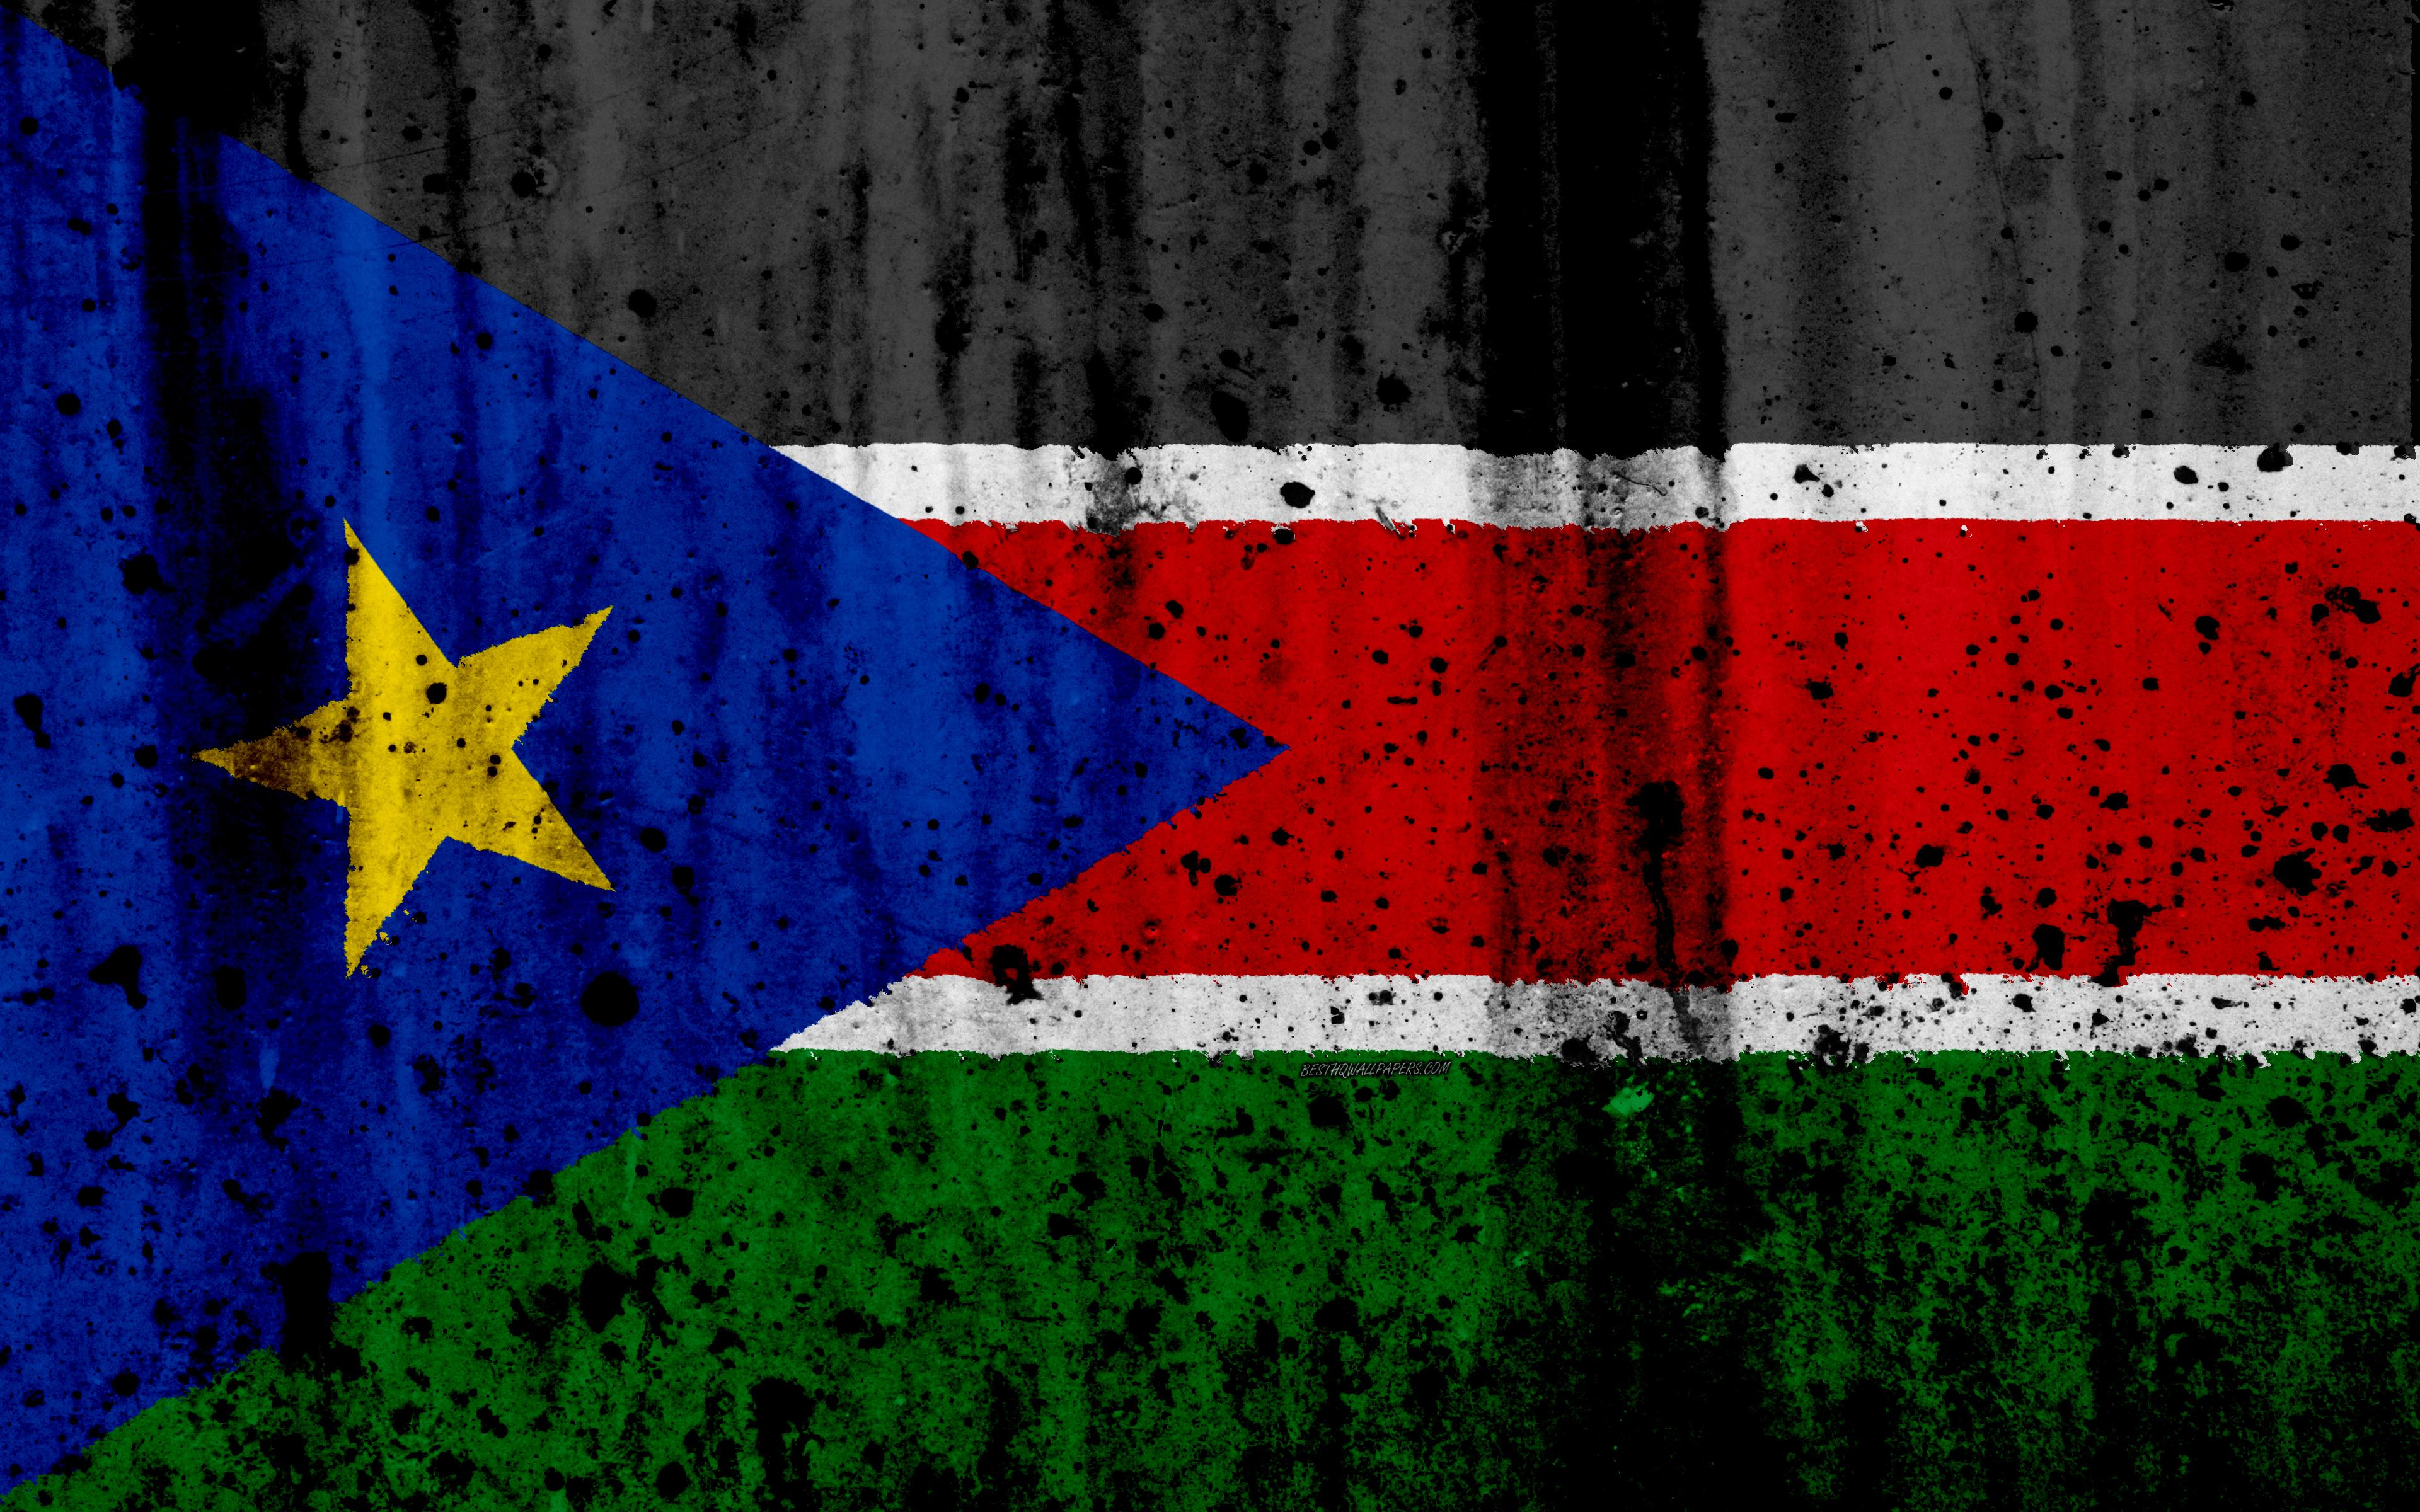 Download wallpapers South Sudan flag, 4k, grunge, flag of South ...